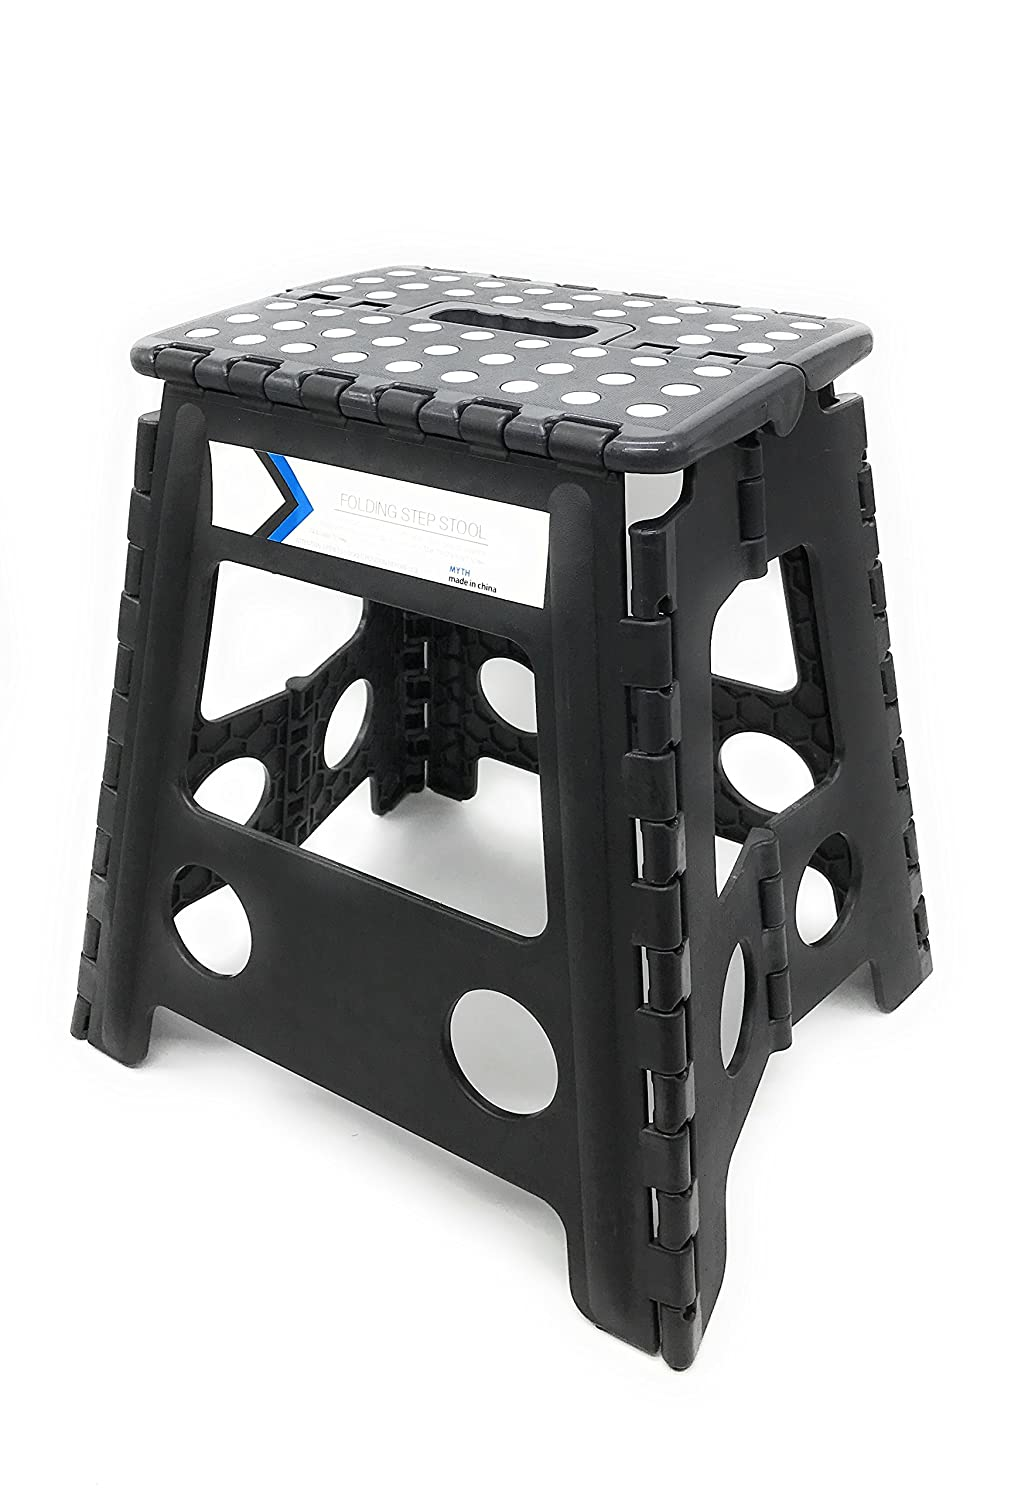 Folding Step Stool 16 Inches Height by Myth with Anti-Slip Surface Great for Kitchen, Bathroom, Bedroom, Kids or Adults Super Strong Holds Up to 330 LBS Black